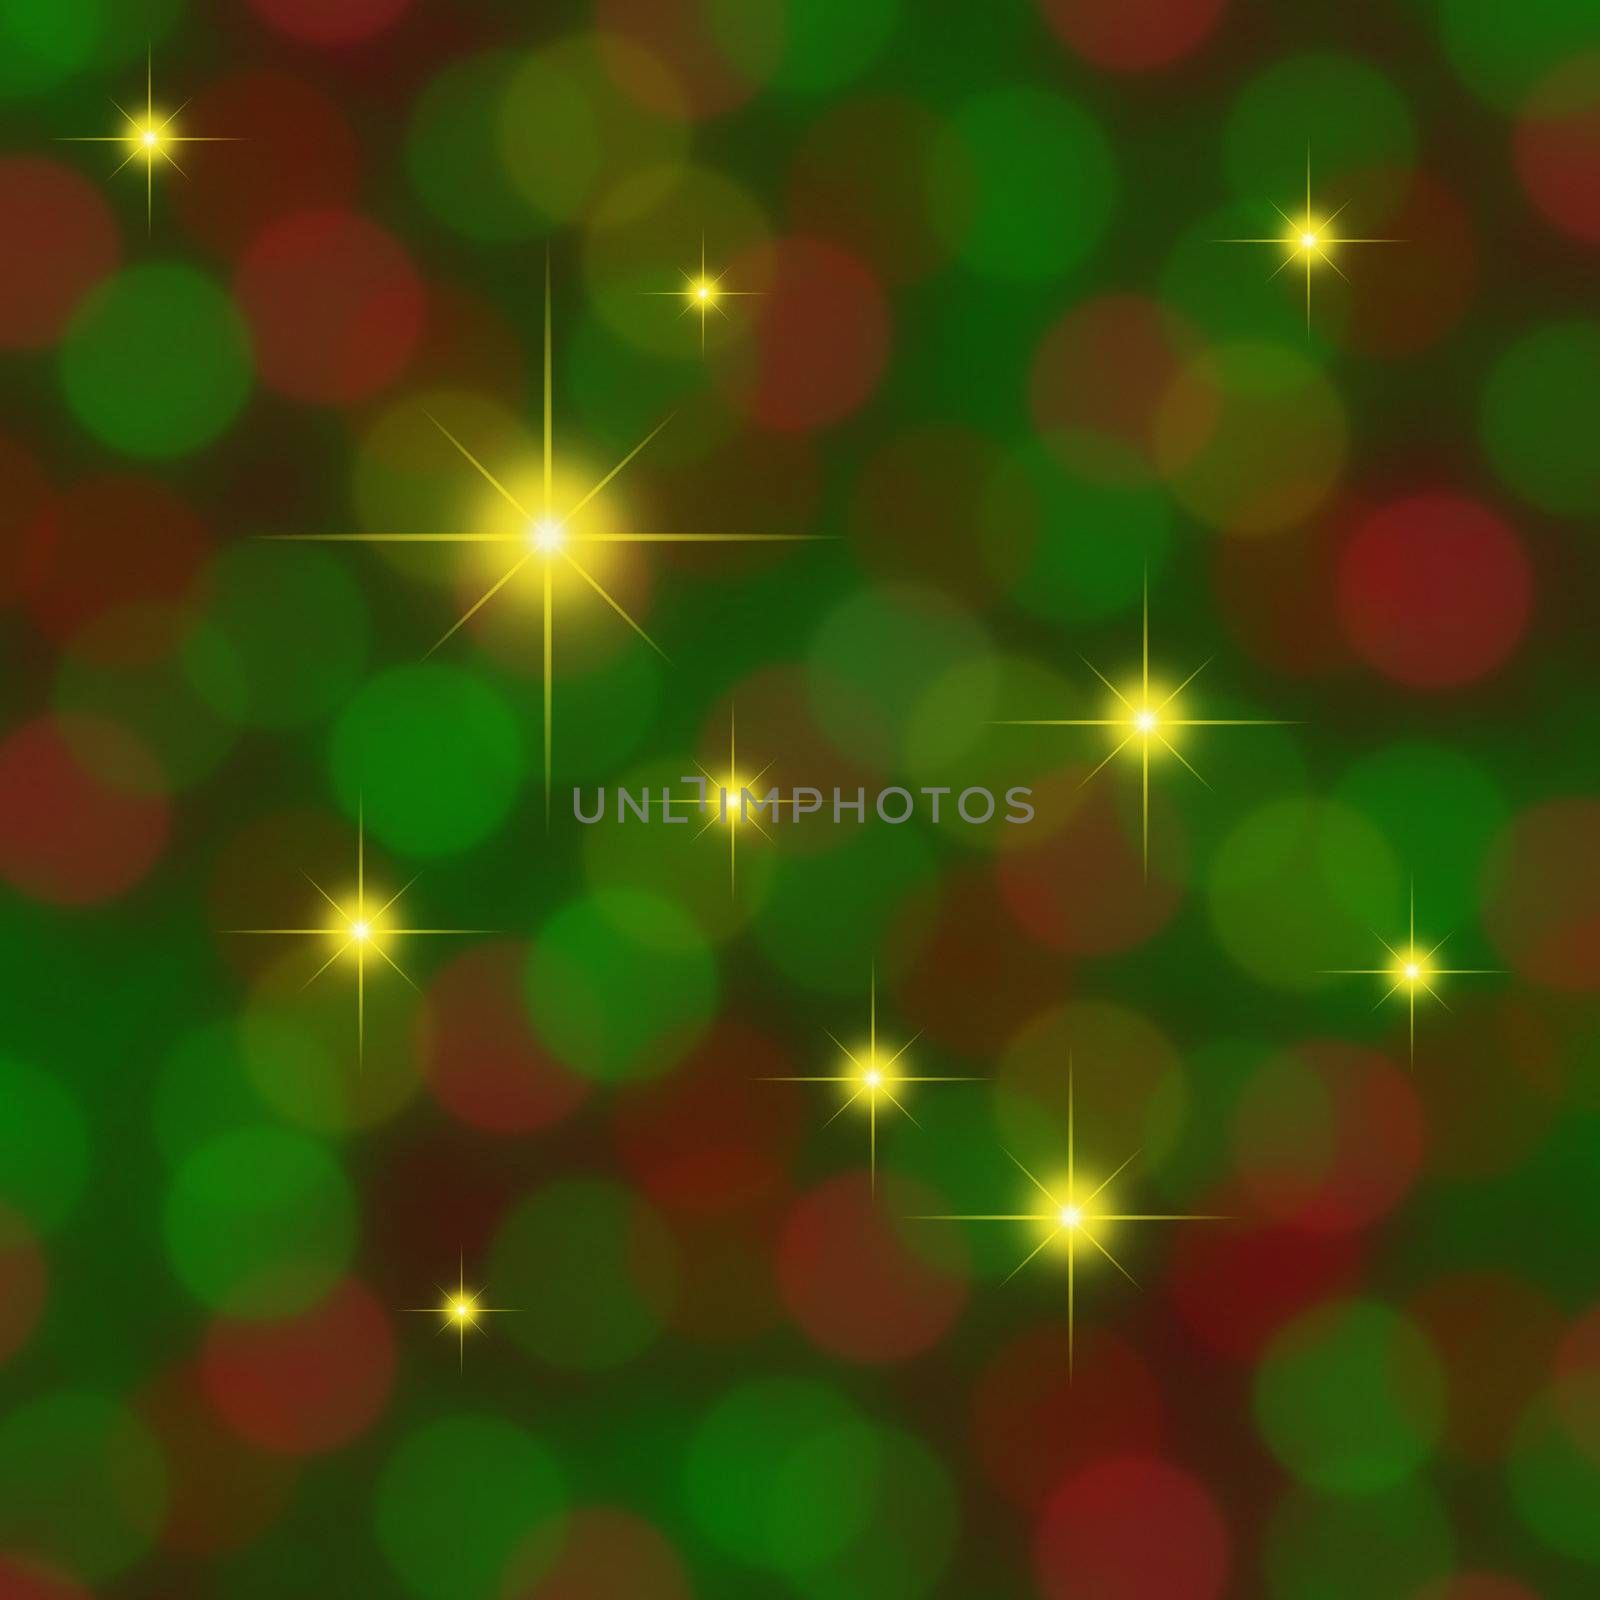 Red and green blurred background with golden stars twinkling through